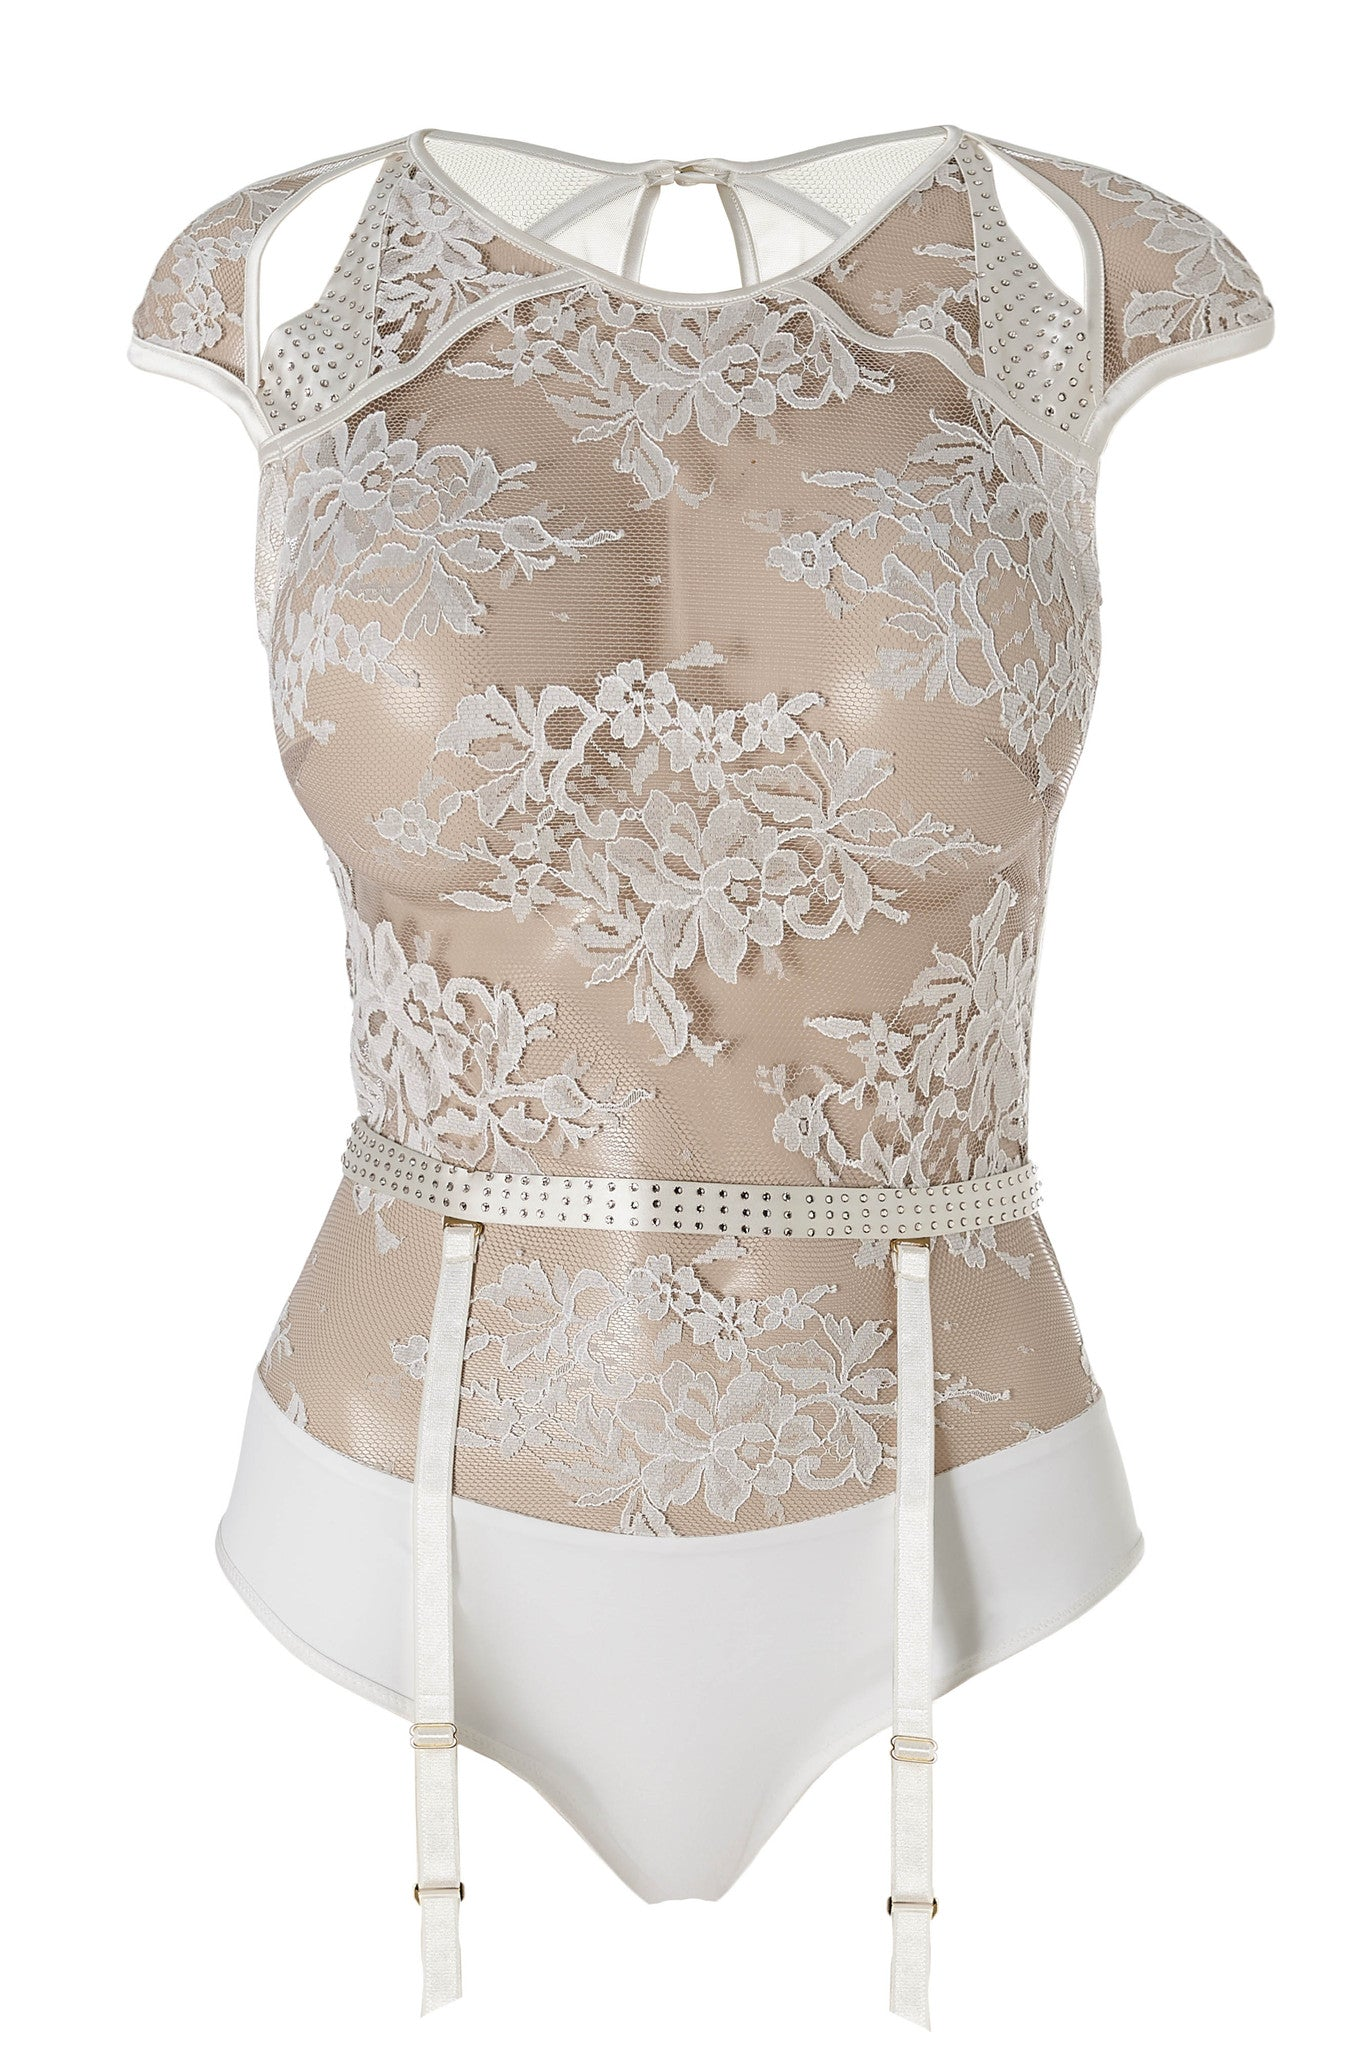 Nadya designer lace body and suspender by Tatu Couture